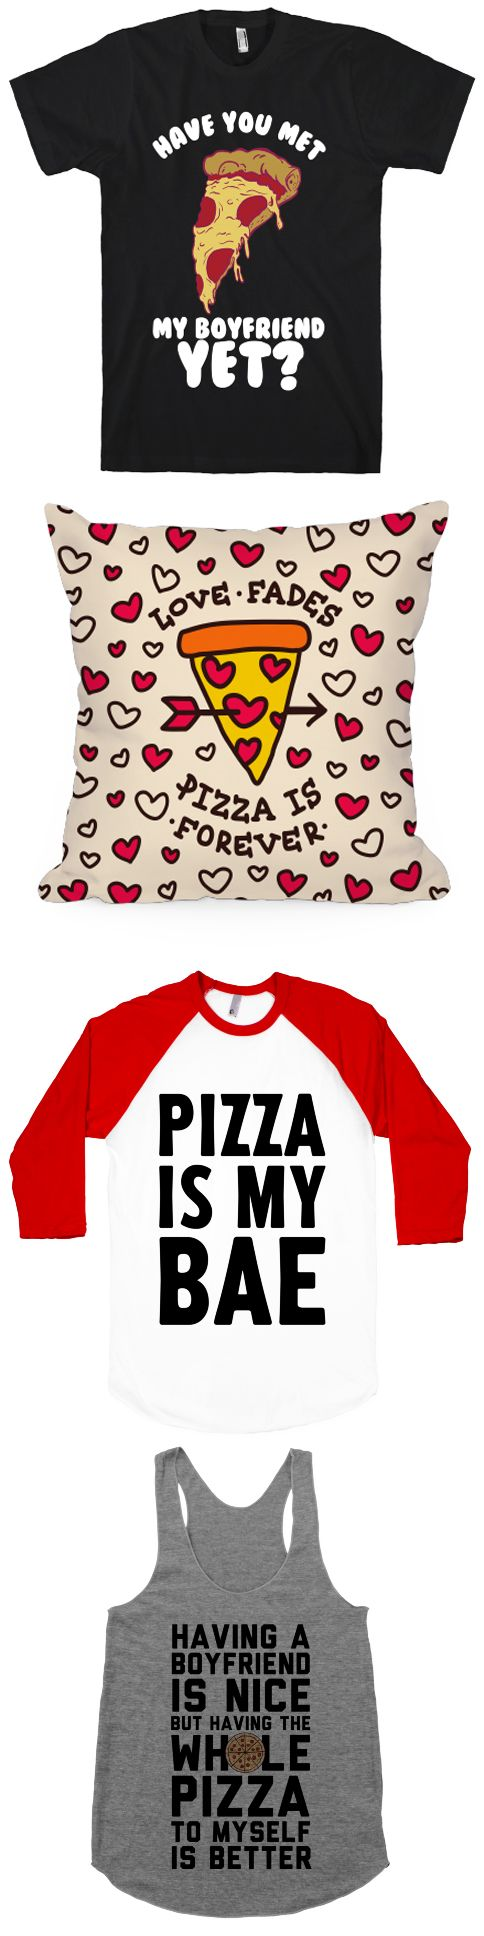 Pizza Socks - I Love you With Every Pizza My Heart - Pizza Man Gift - Funny Socks - second anniversary Gift - Mens Christmas Gift KwfPq